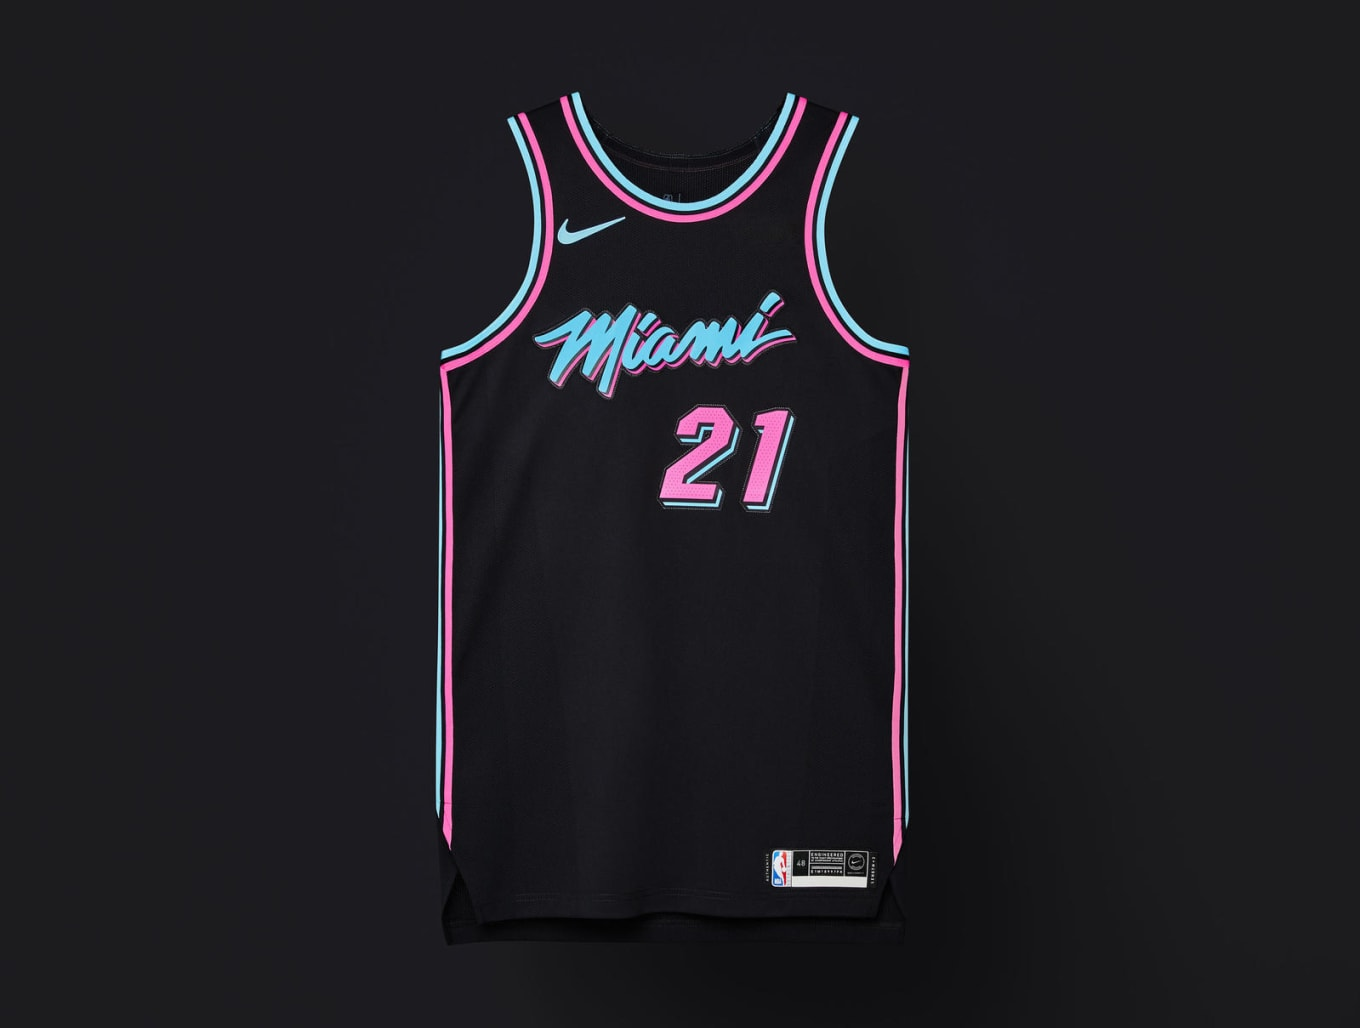 outlet store sale cbc7a 8376e Nike 2018-19 NBA City Edition Jerseys | Sole Collector